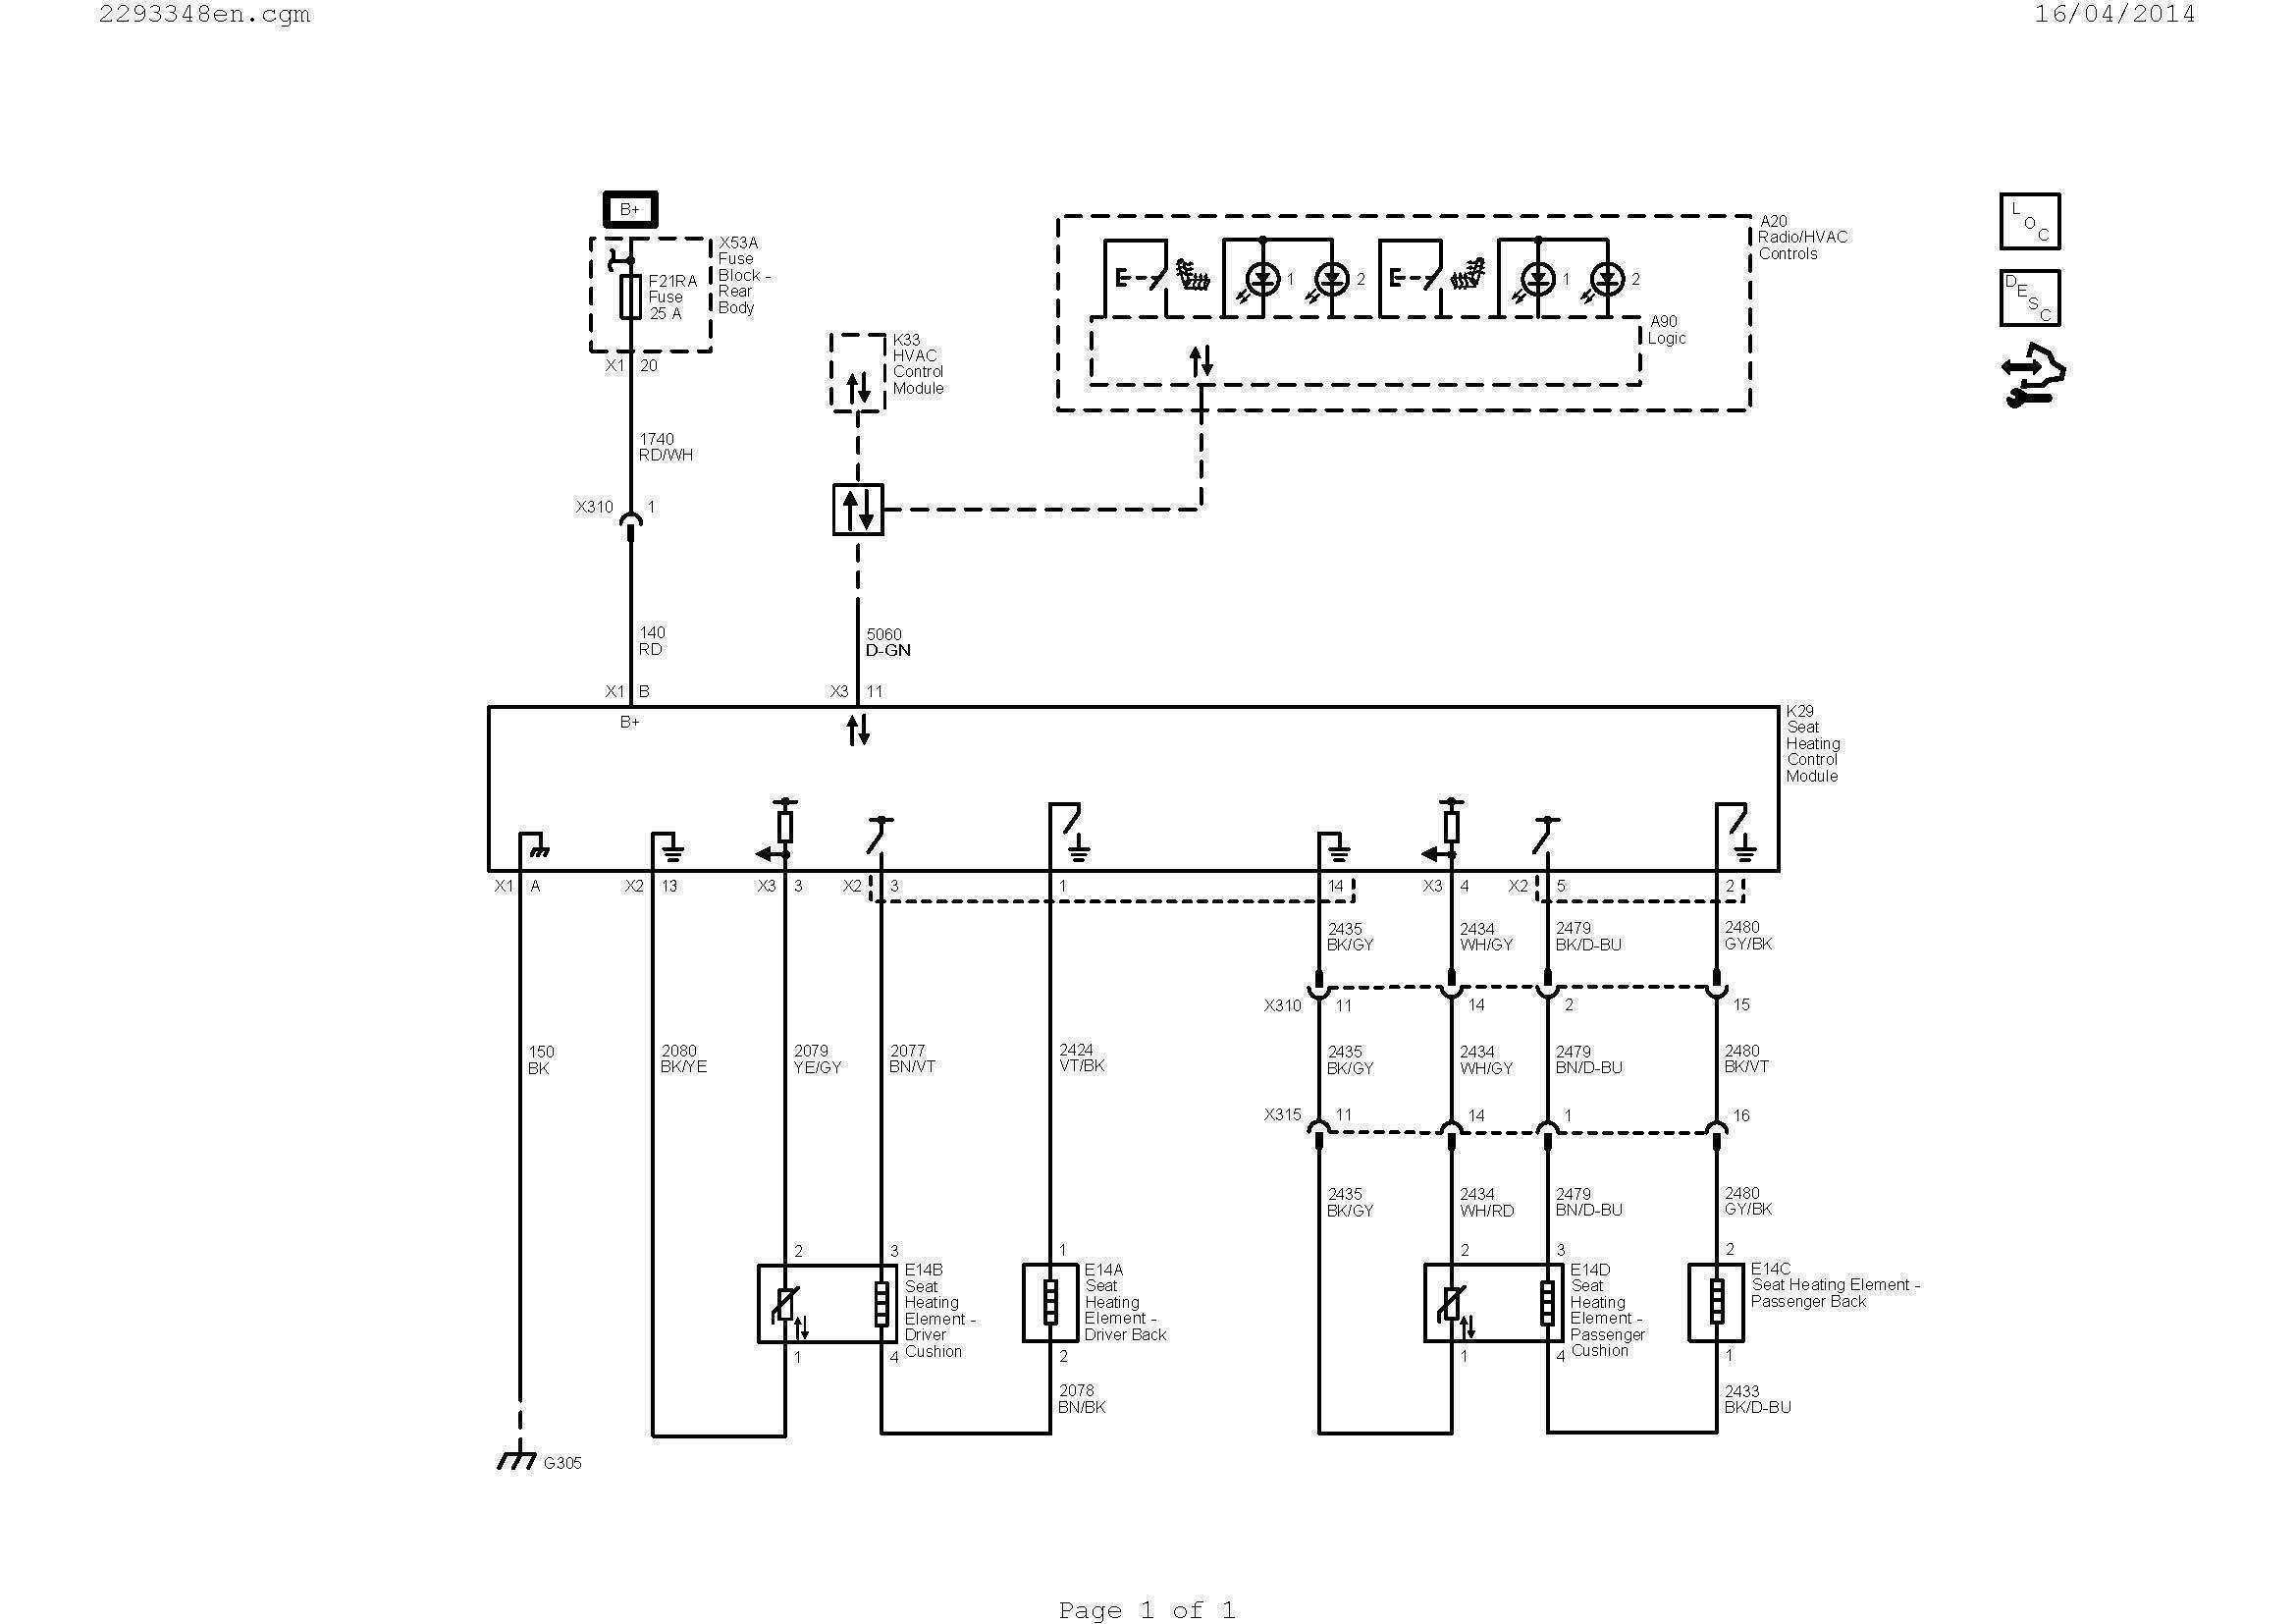 Ac Diagram Car Wrg 1635] Tiller Wiring Diagram Of Ac Diagram Car